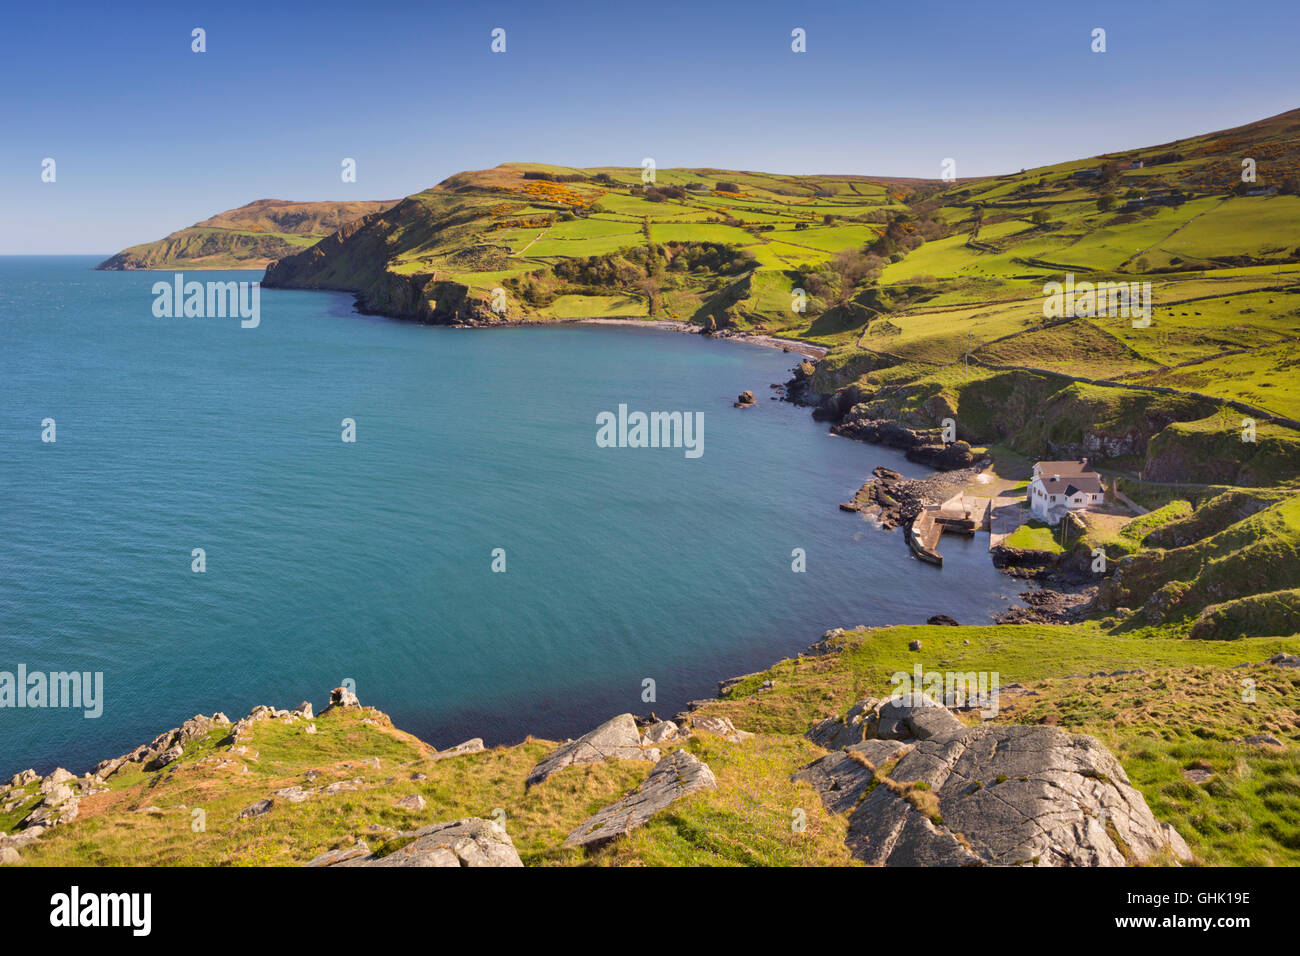 View from Torr Head on the Causeway Coast of Northern Ireland on a sunny day. - Stock Image